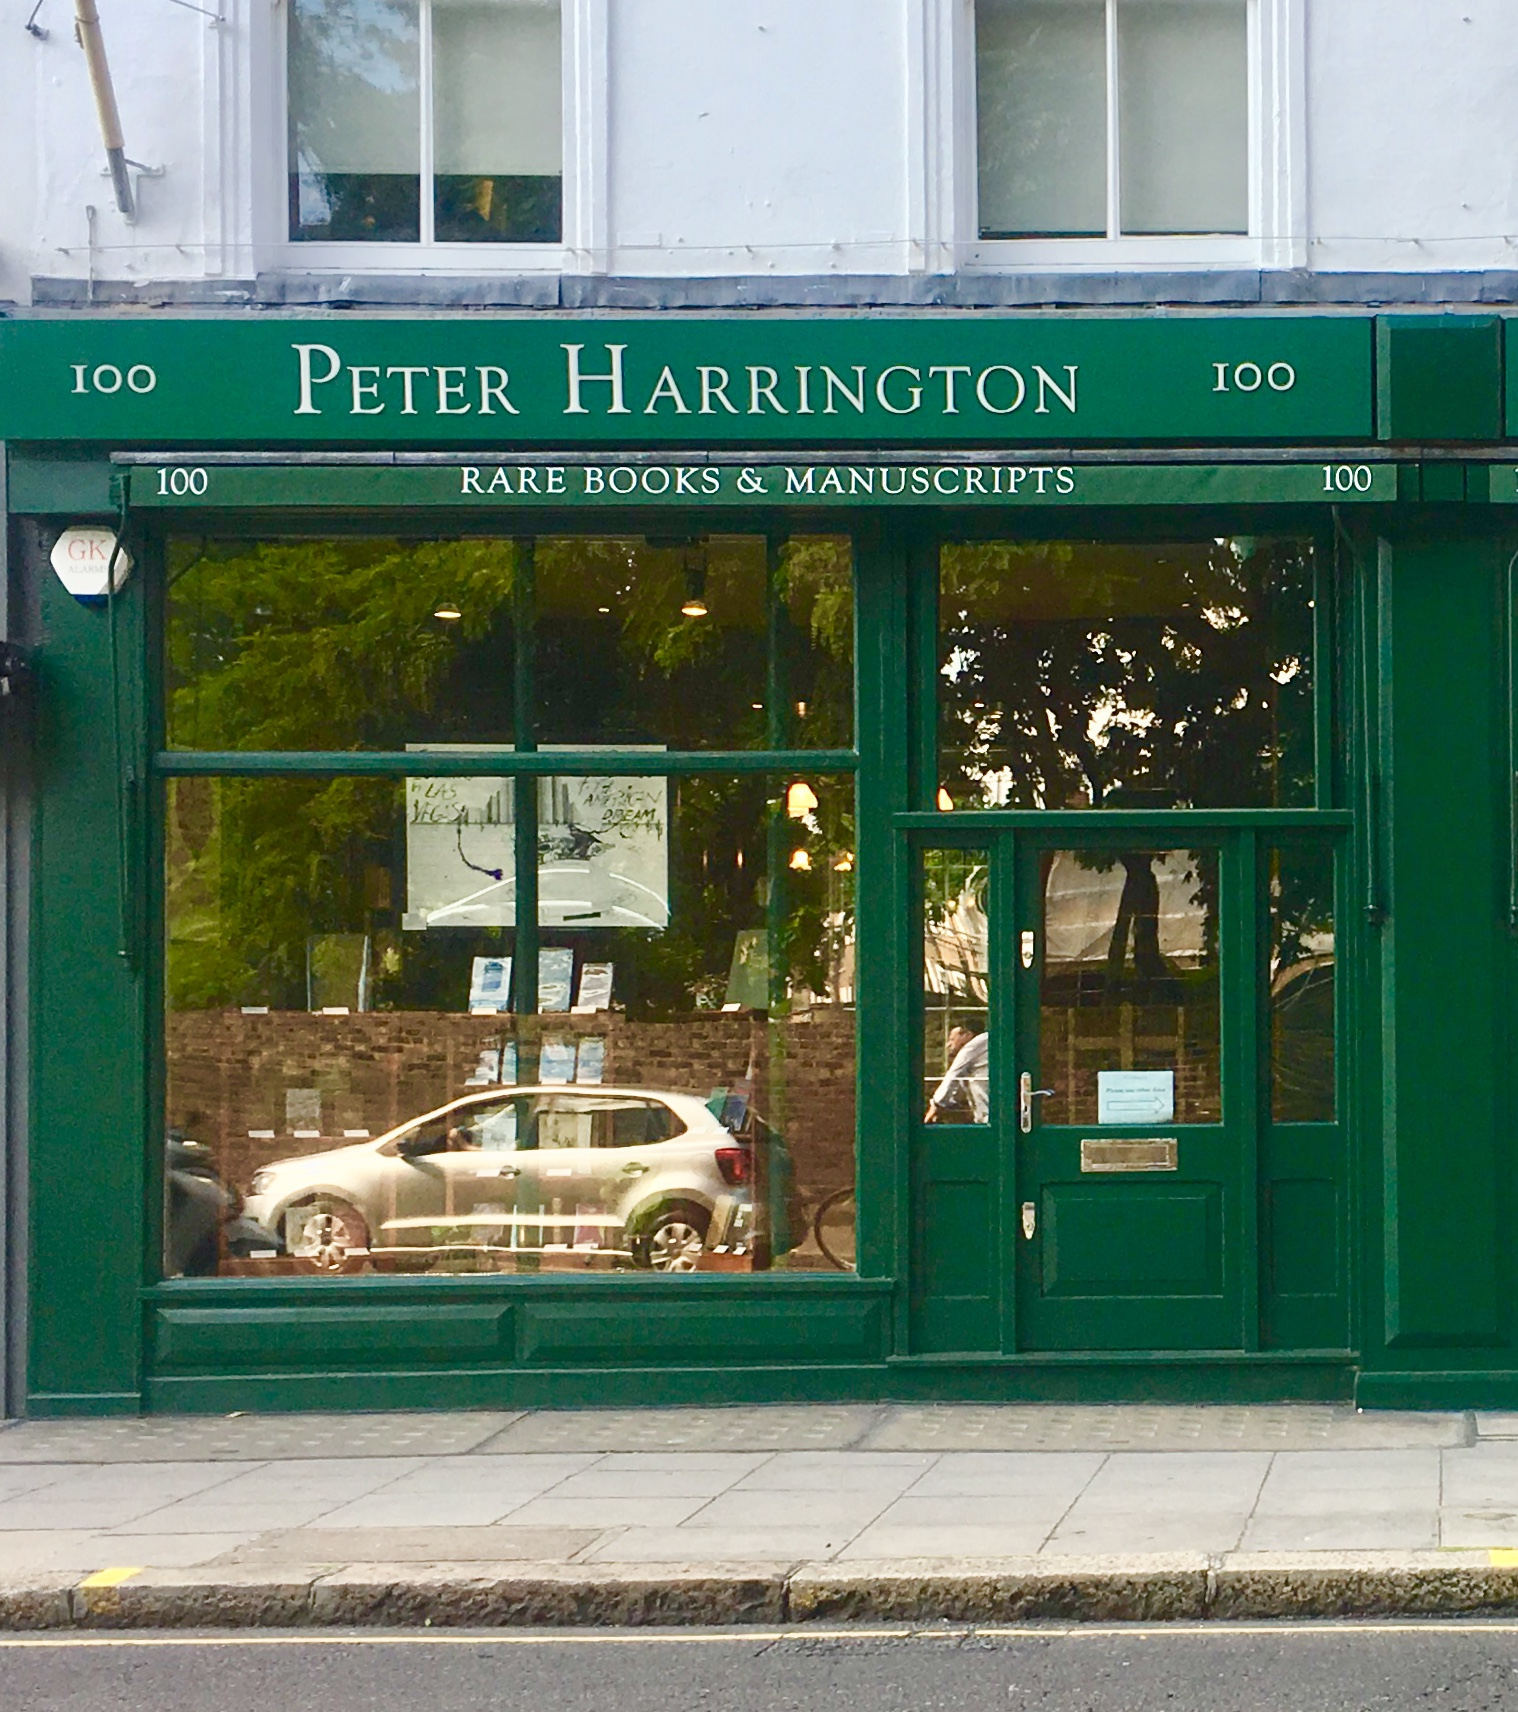 Peter Harrington Rare Books & Manuscripts  specialises in selling and buying the finest quality original first editions, signed, rare and antiquarian books, library sets, maps and original manuscripts.